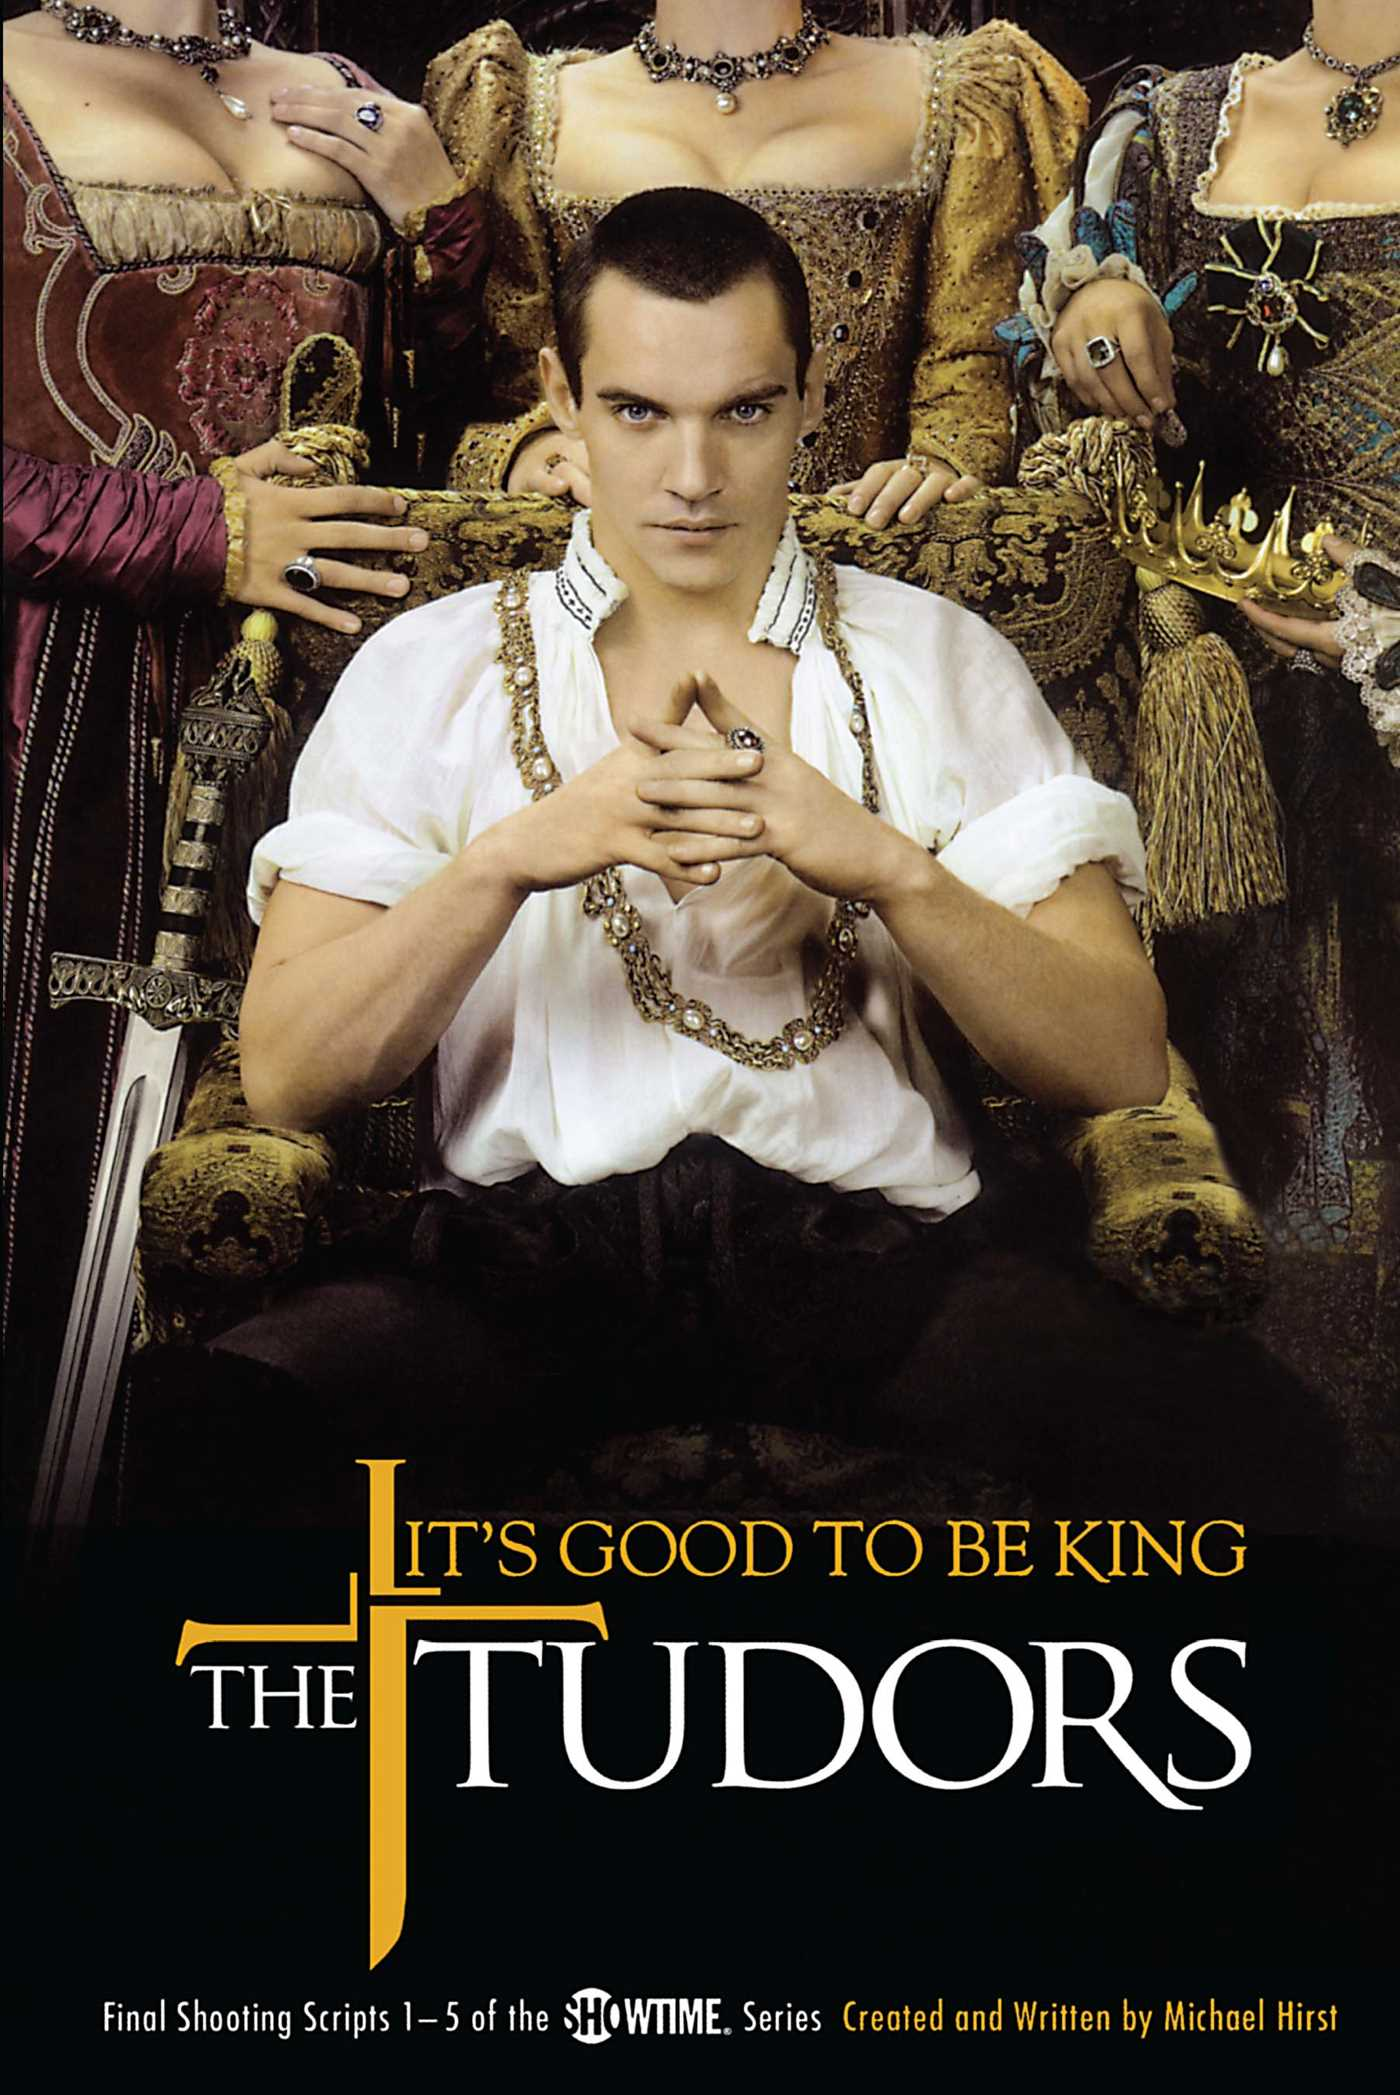 The-tudors-its-good-to-be-king-9781416948841_hr